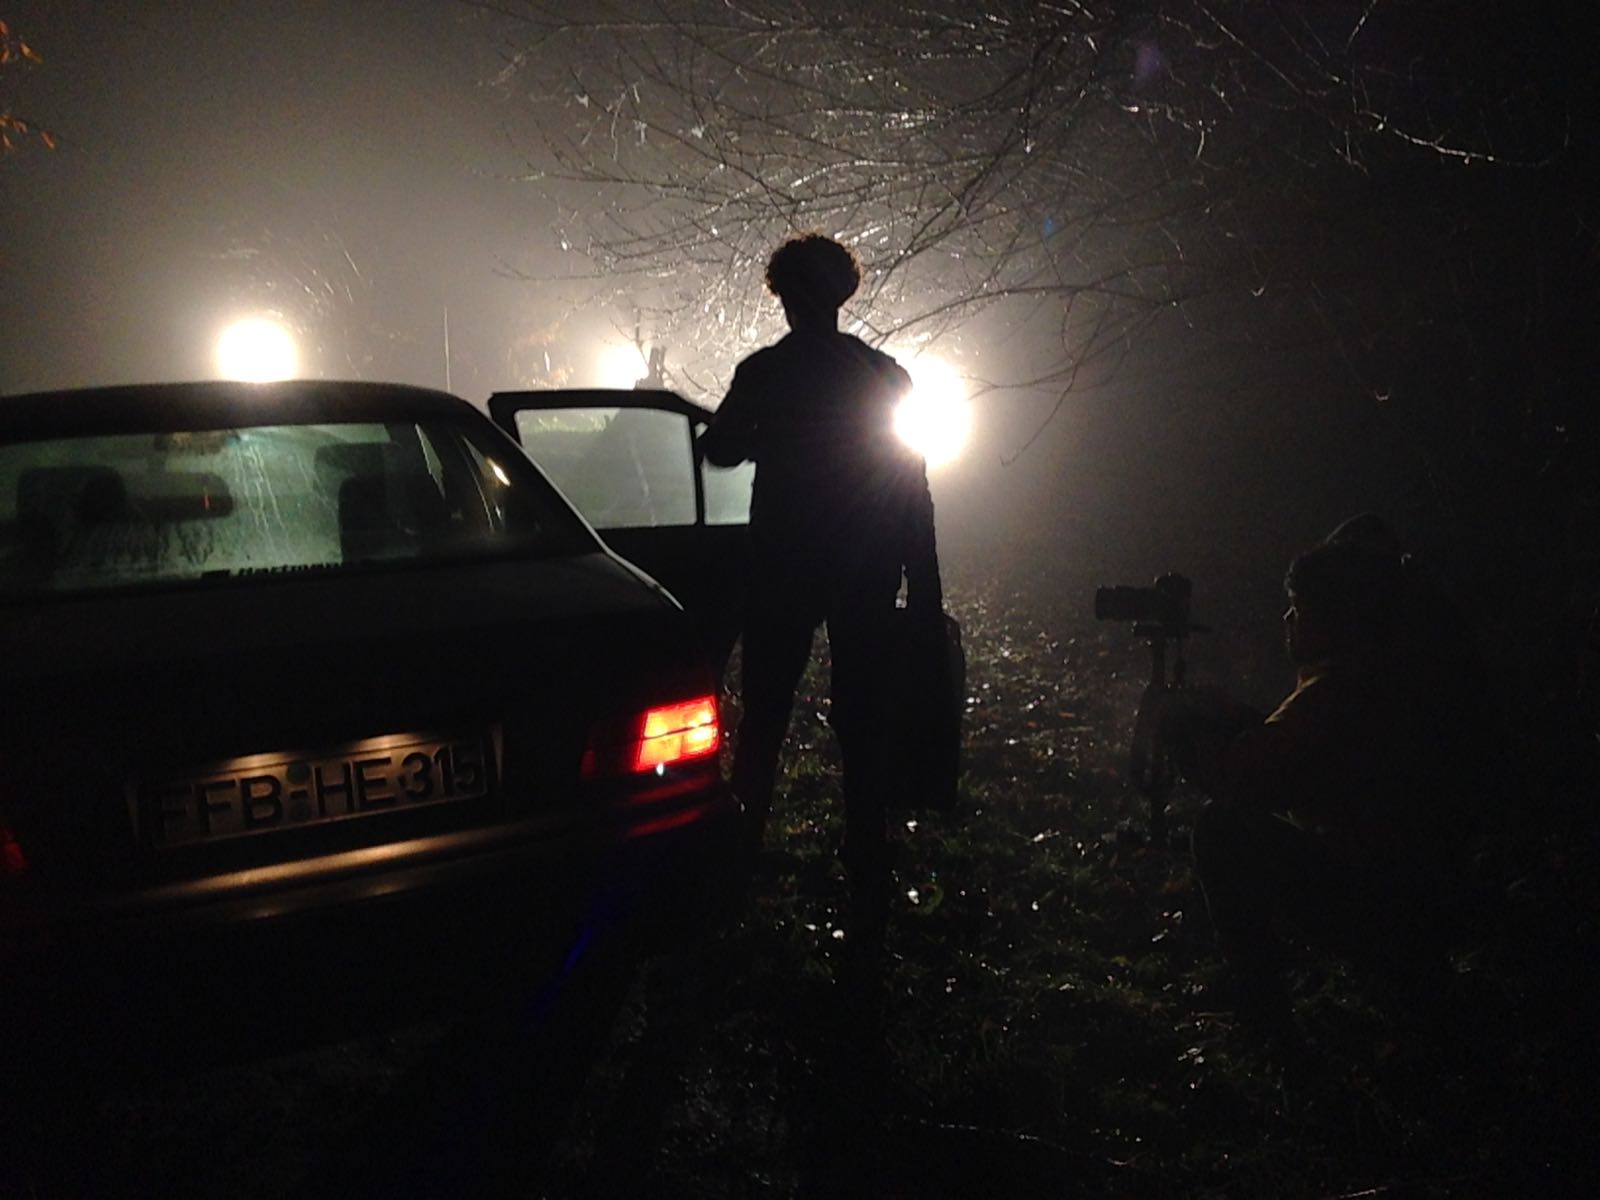 Games in the Darkness - Video Shooting day 1